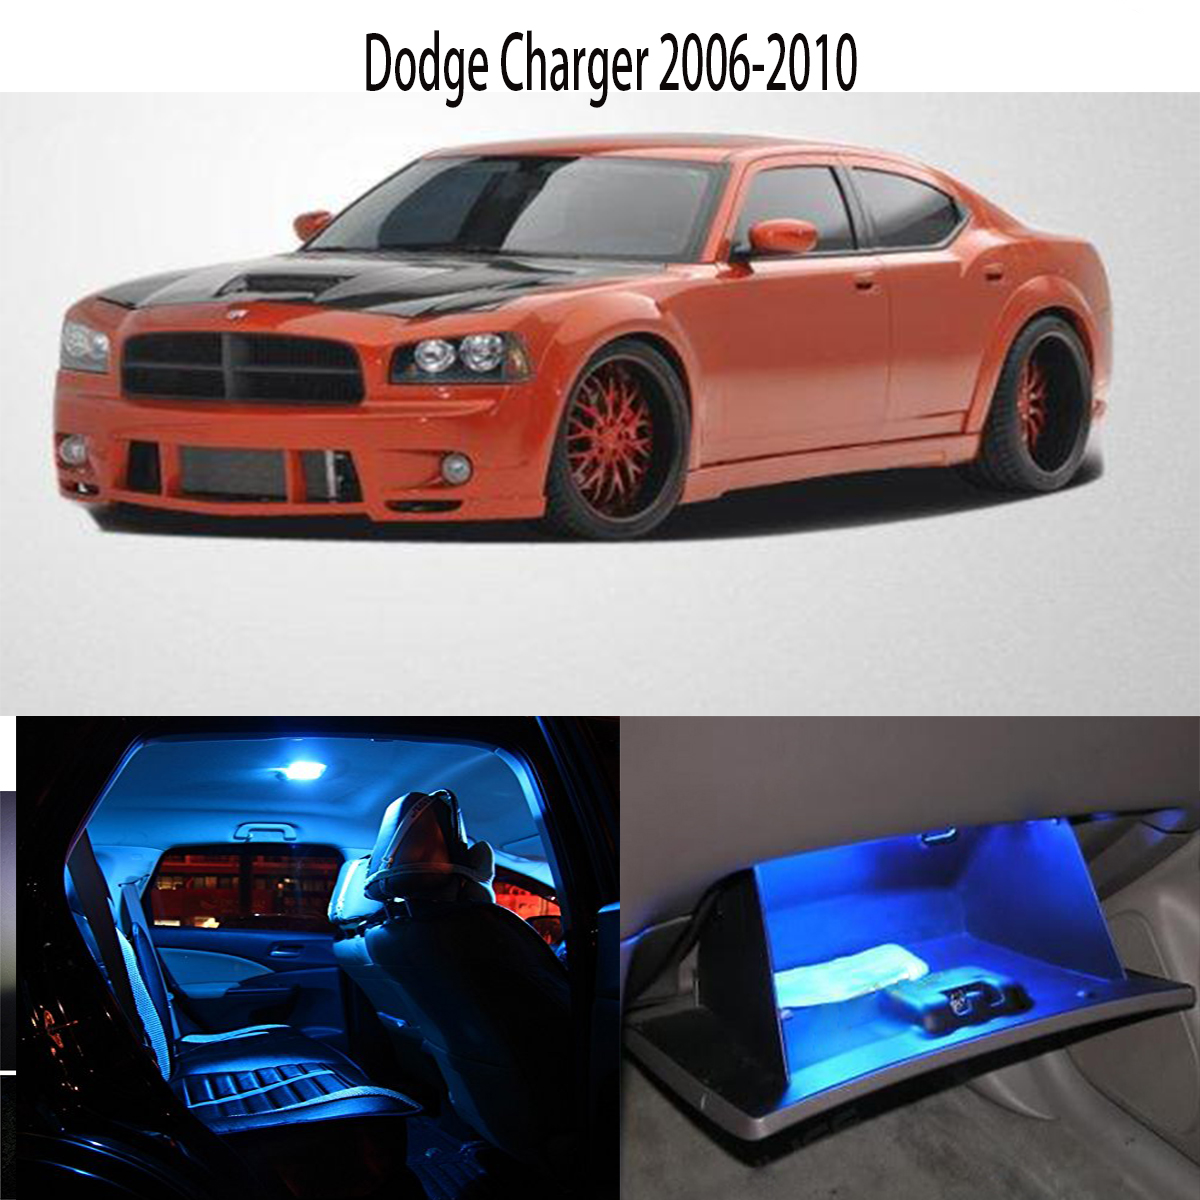 8x led ice blue light interior dome license package kit for dodge charger 2006 2010